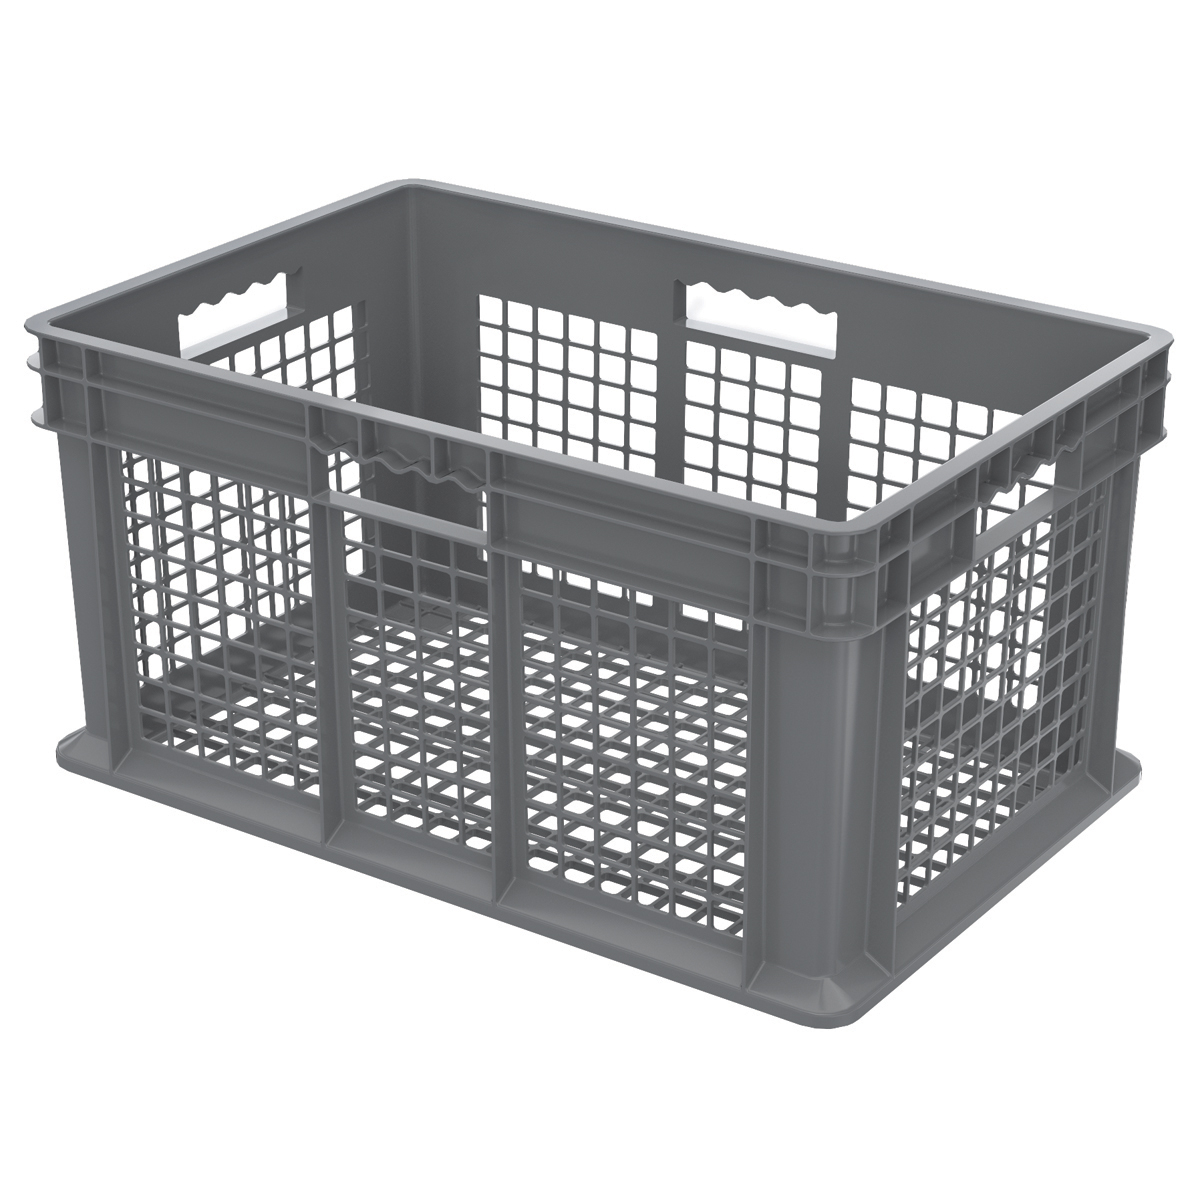 Straight Wall Container, Mesh 23-3/4 x 15-3/4 x 12-1/4, Gray (37612GREY).  This item sold in carton quantities of 3.